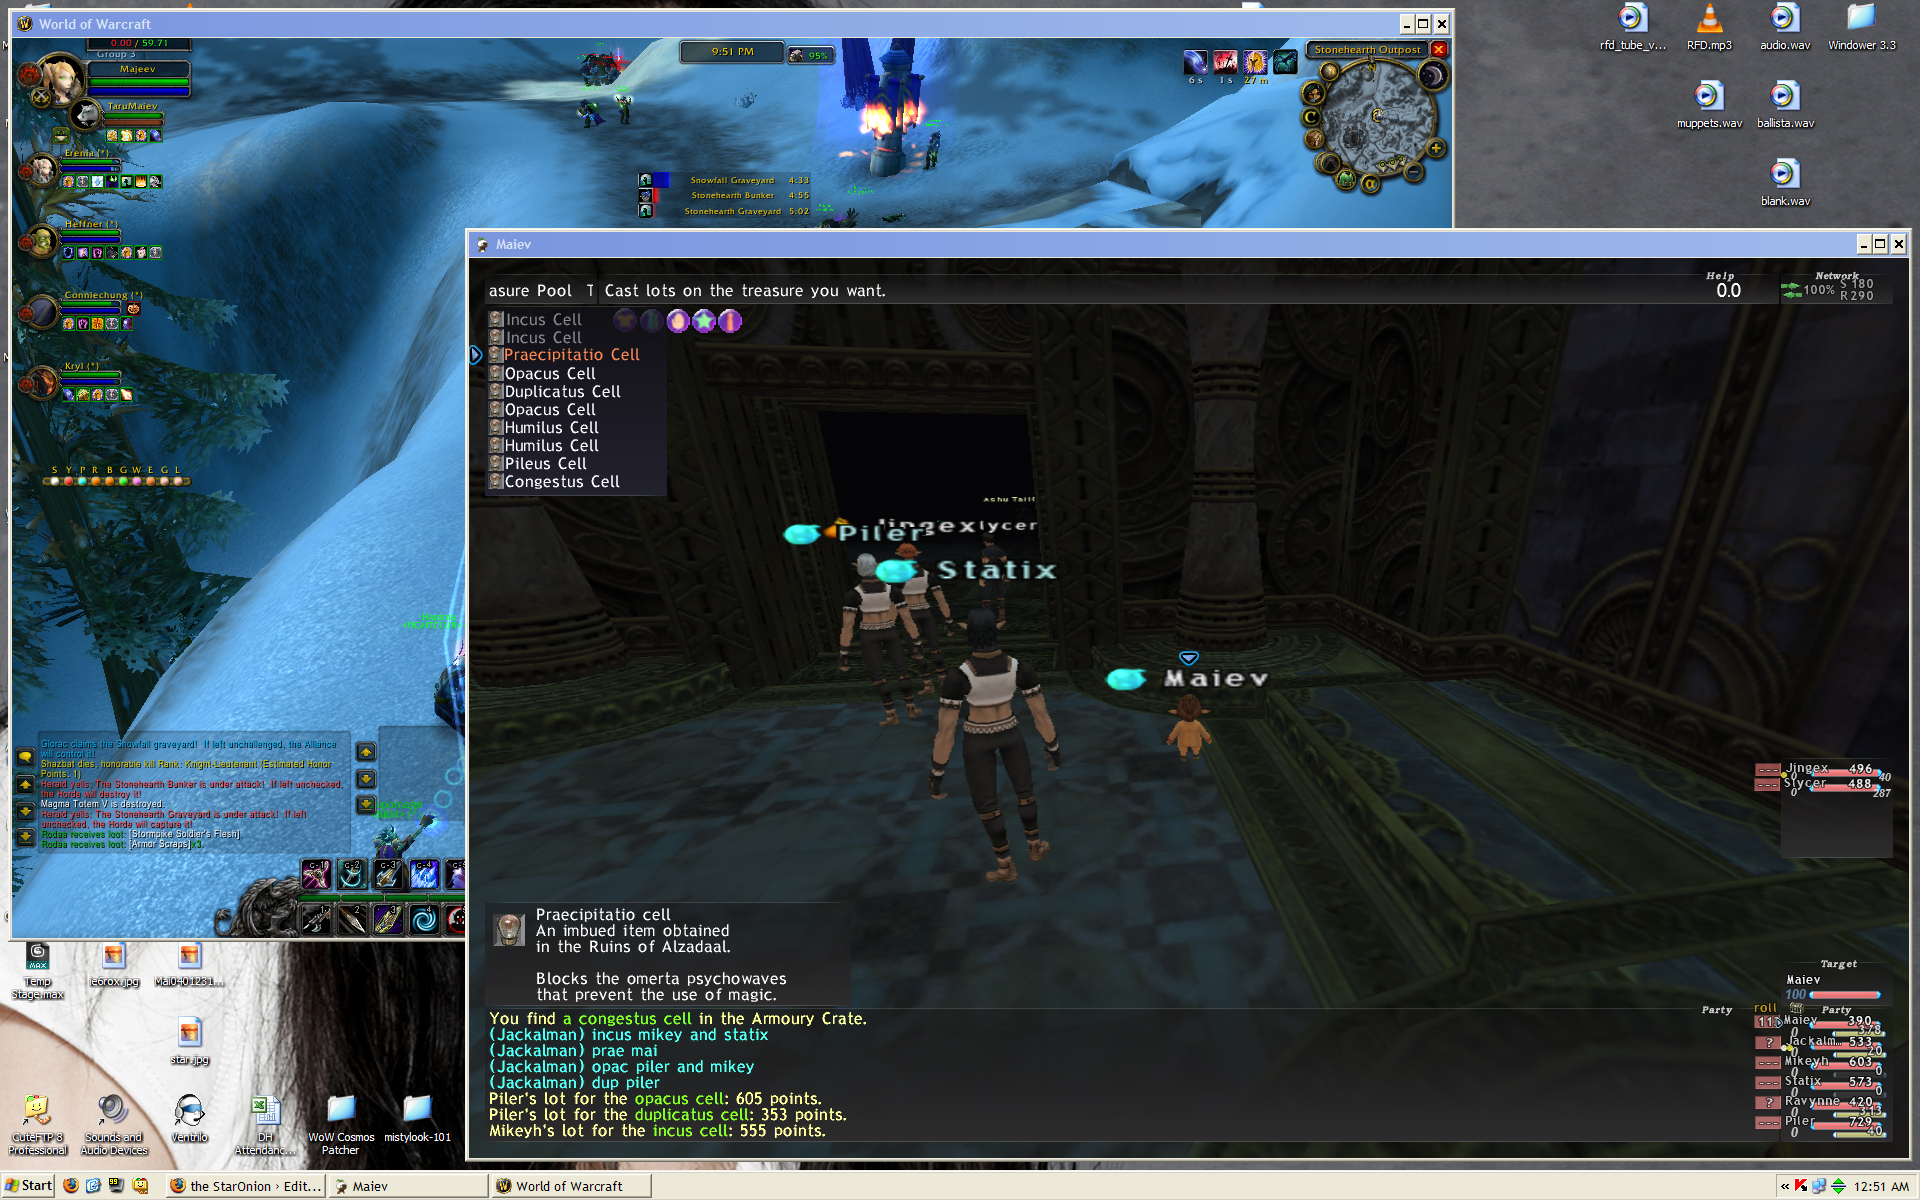 2boxing, WoW, FFXI, Running 2 Game